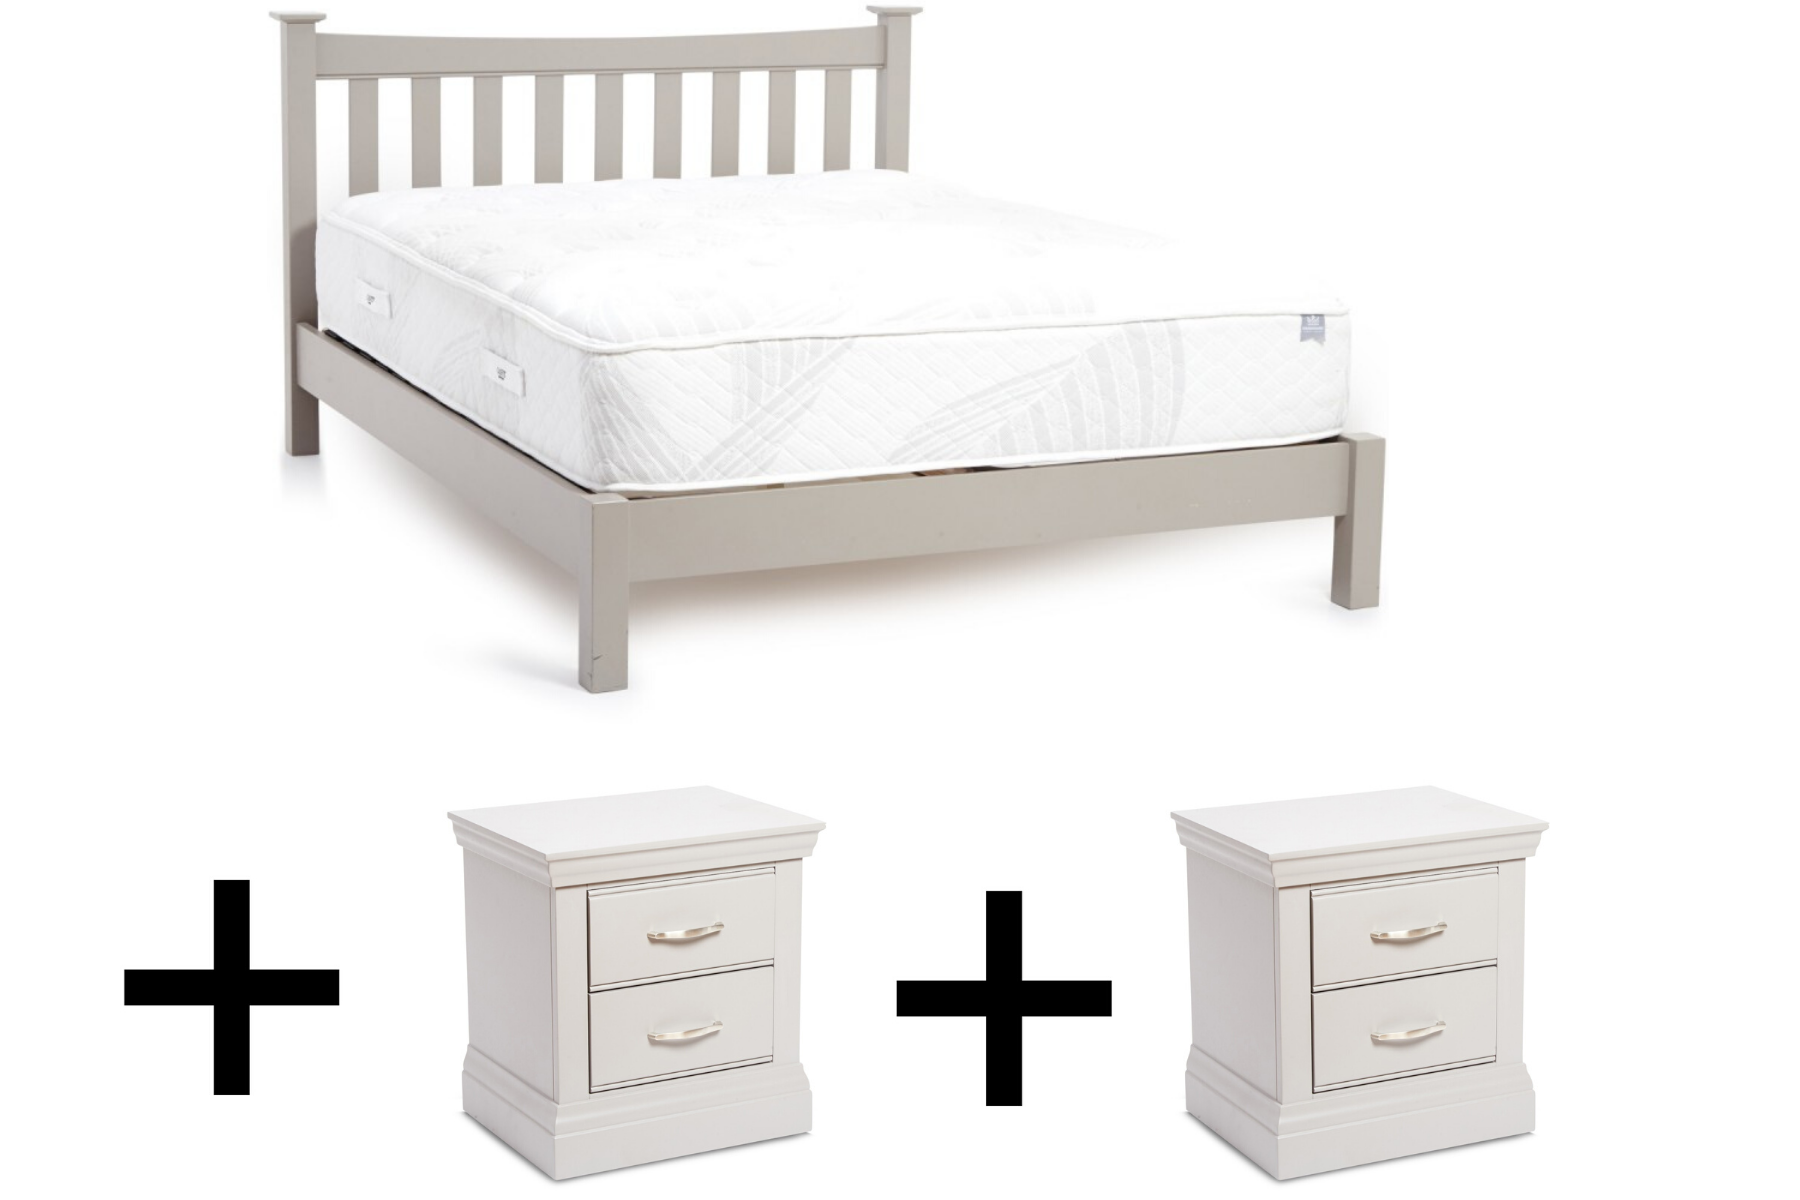 Shropshire Bedframe and Two Bedside Lockers